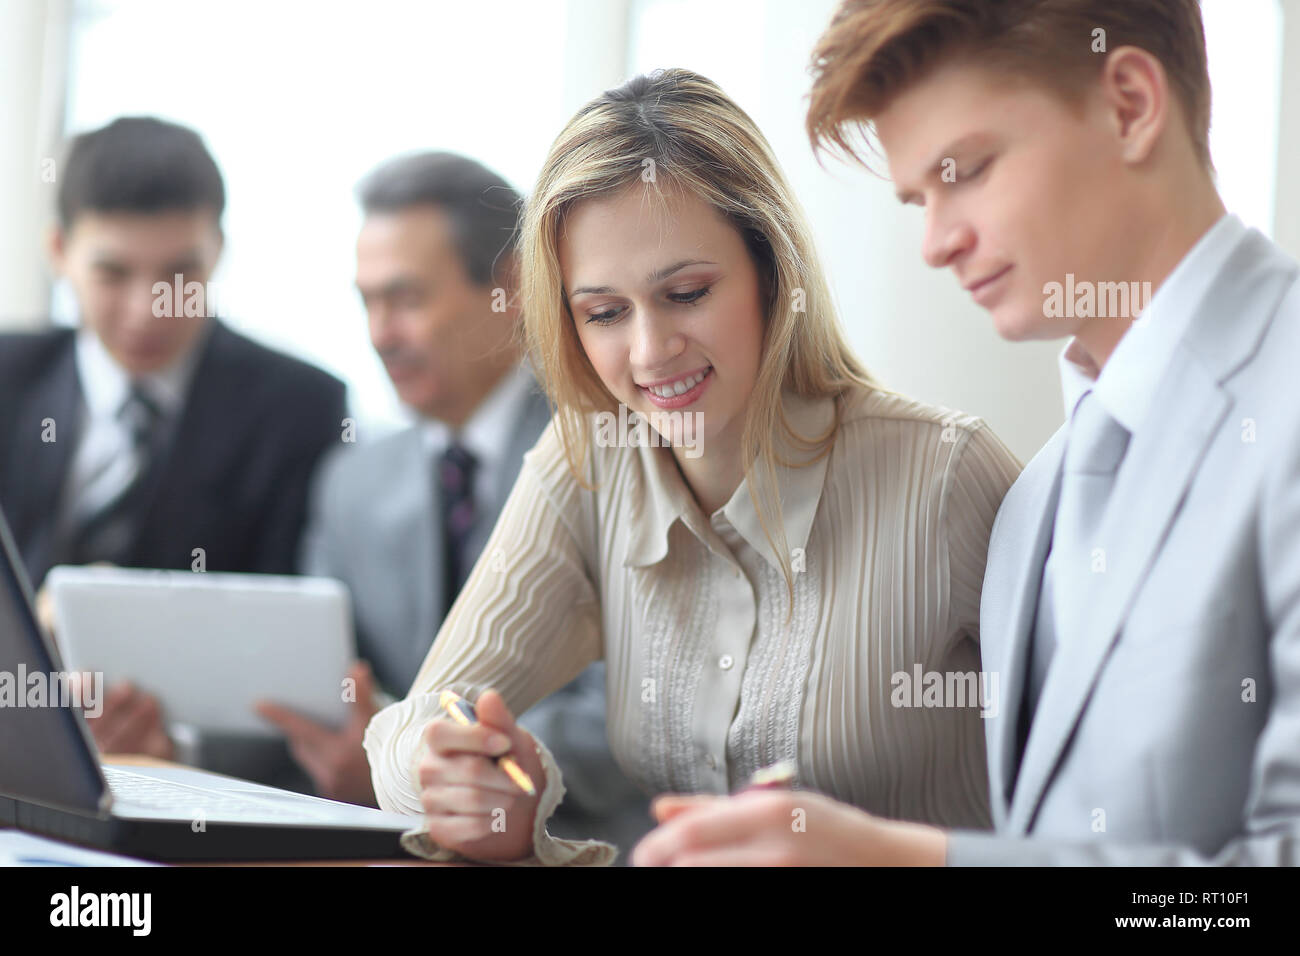 blurred image of a business team working on financial scheduling - Stock Image